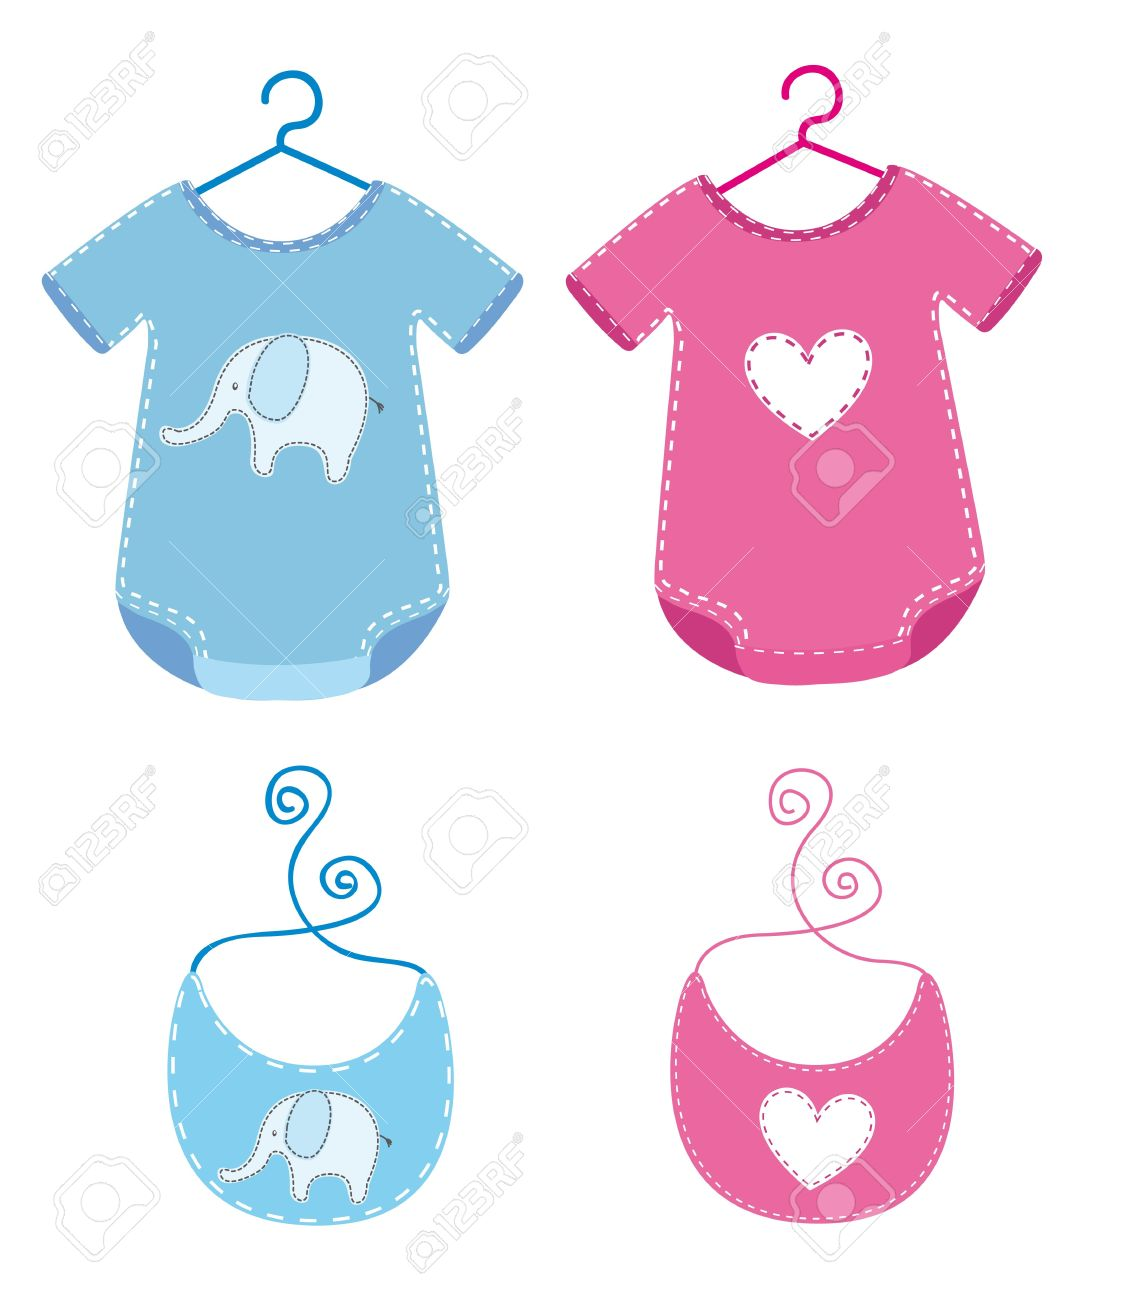 baby clothes with bib isolated over white background. Stock Vector - 14039028